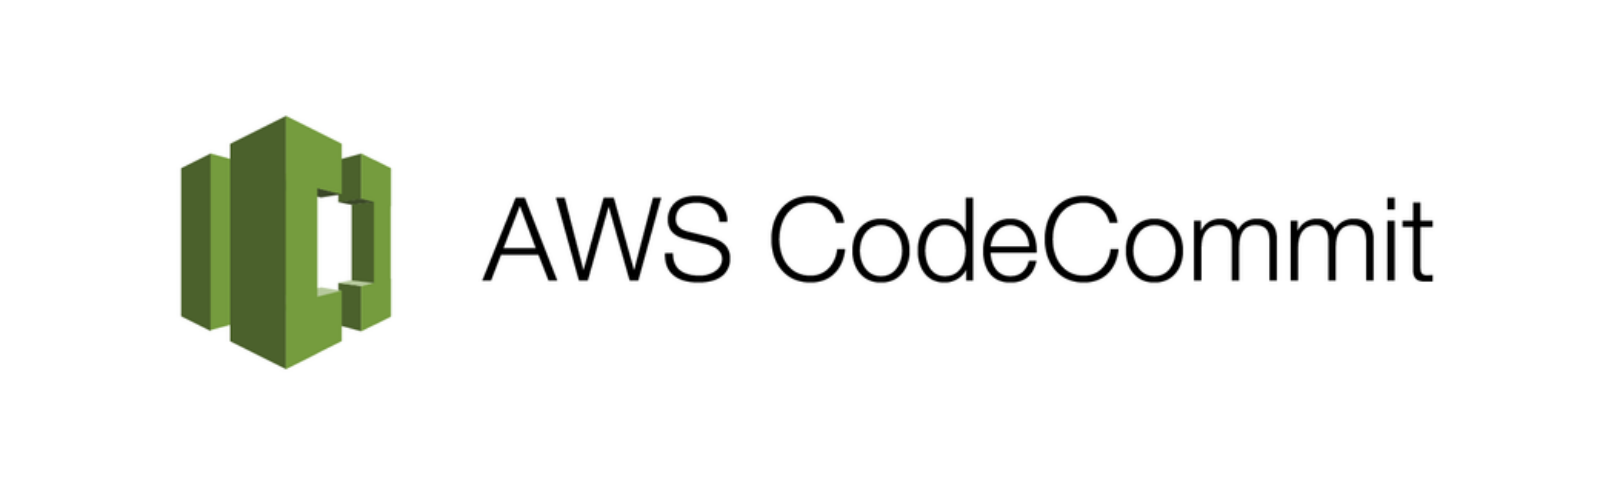 Difference Between GitHub and AWS CodeCommit